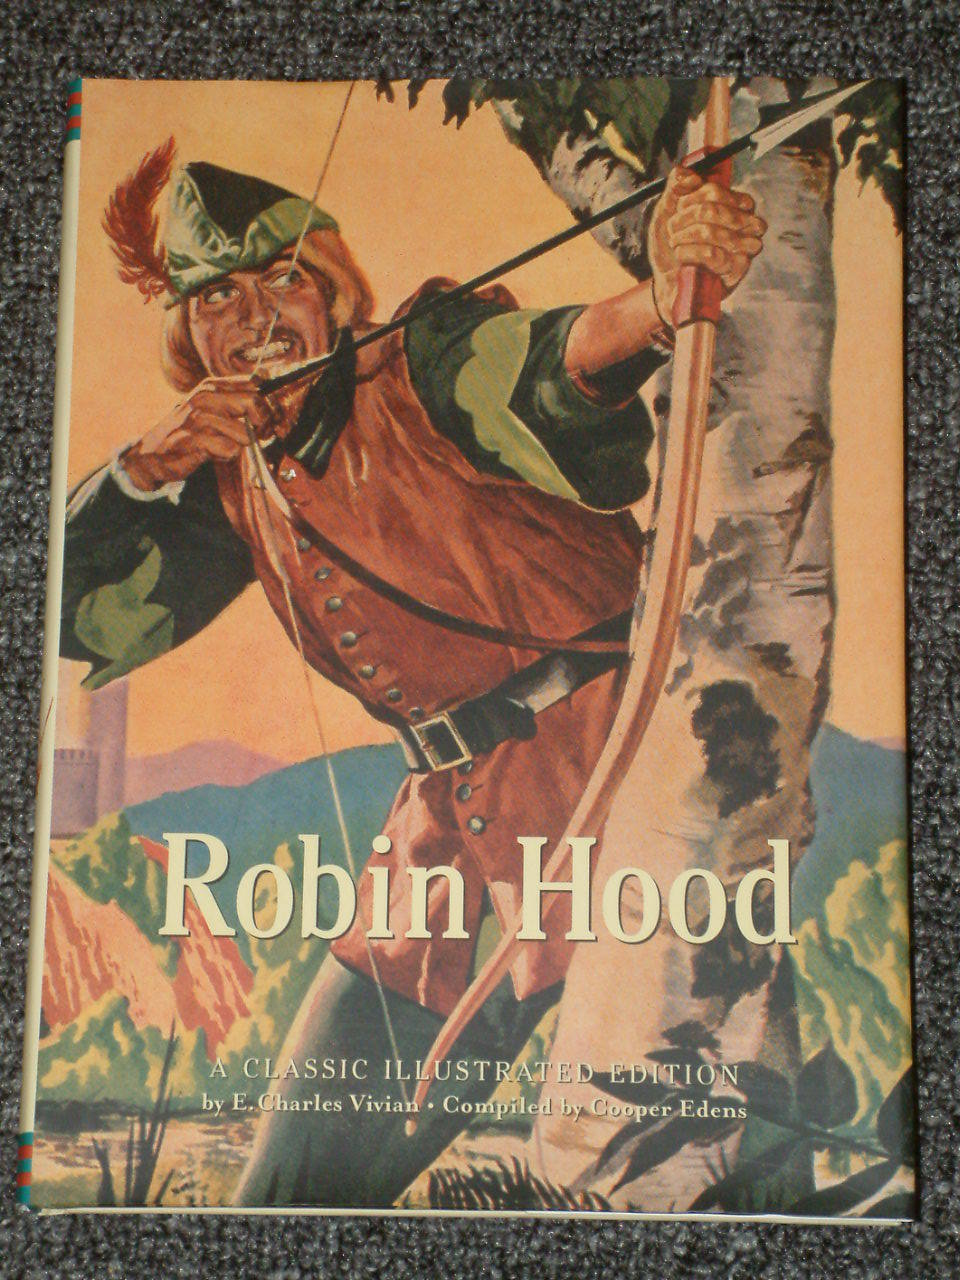 Robin Hood by E. Charles Vivian HB DJ Classic Illustrated